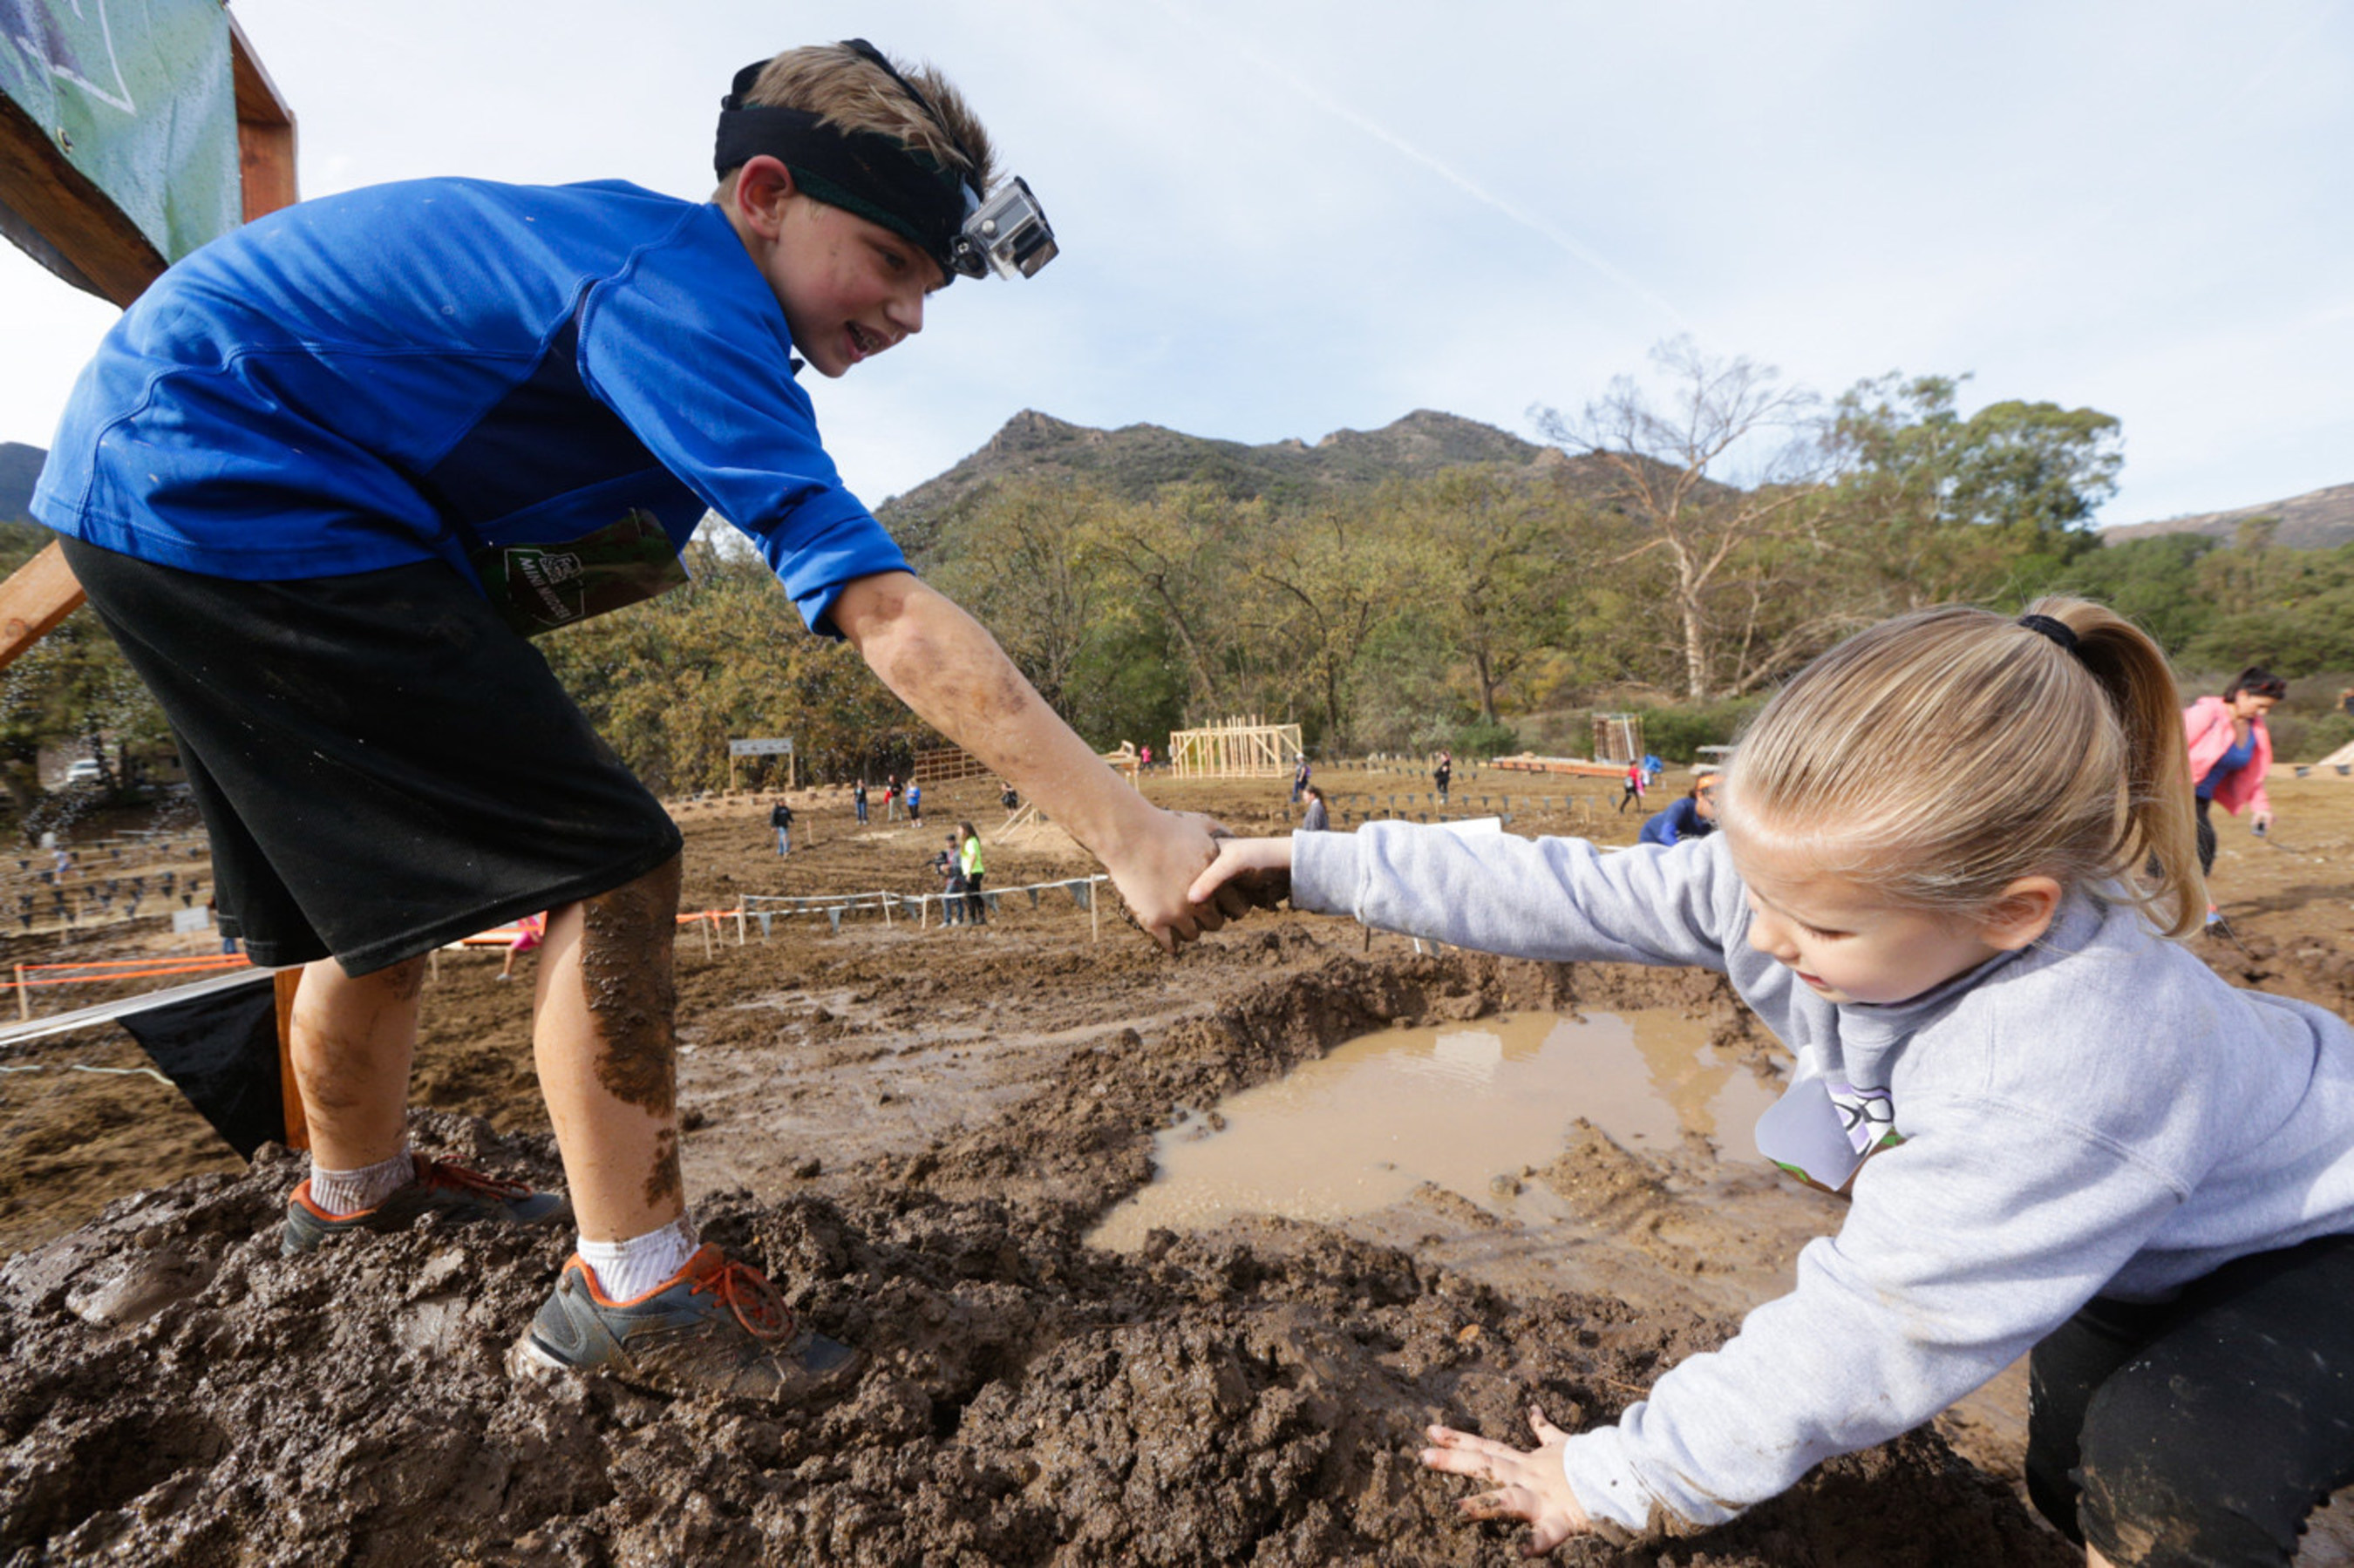 As with Tough Mudder and Mudderella events, Fruit Shoot Mini Mudder courses will be untimed, encouraging children to focus instead on trying new things, building friendships and working as a team